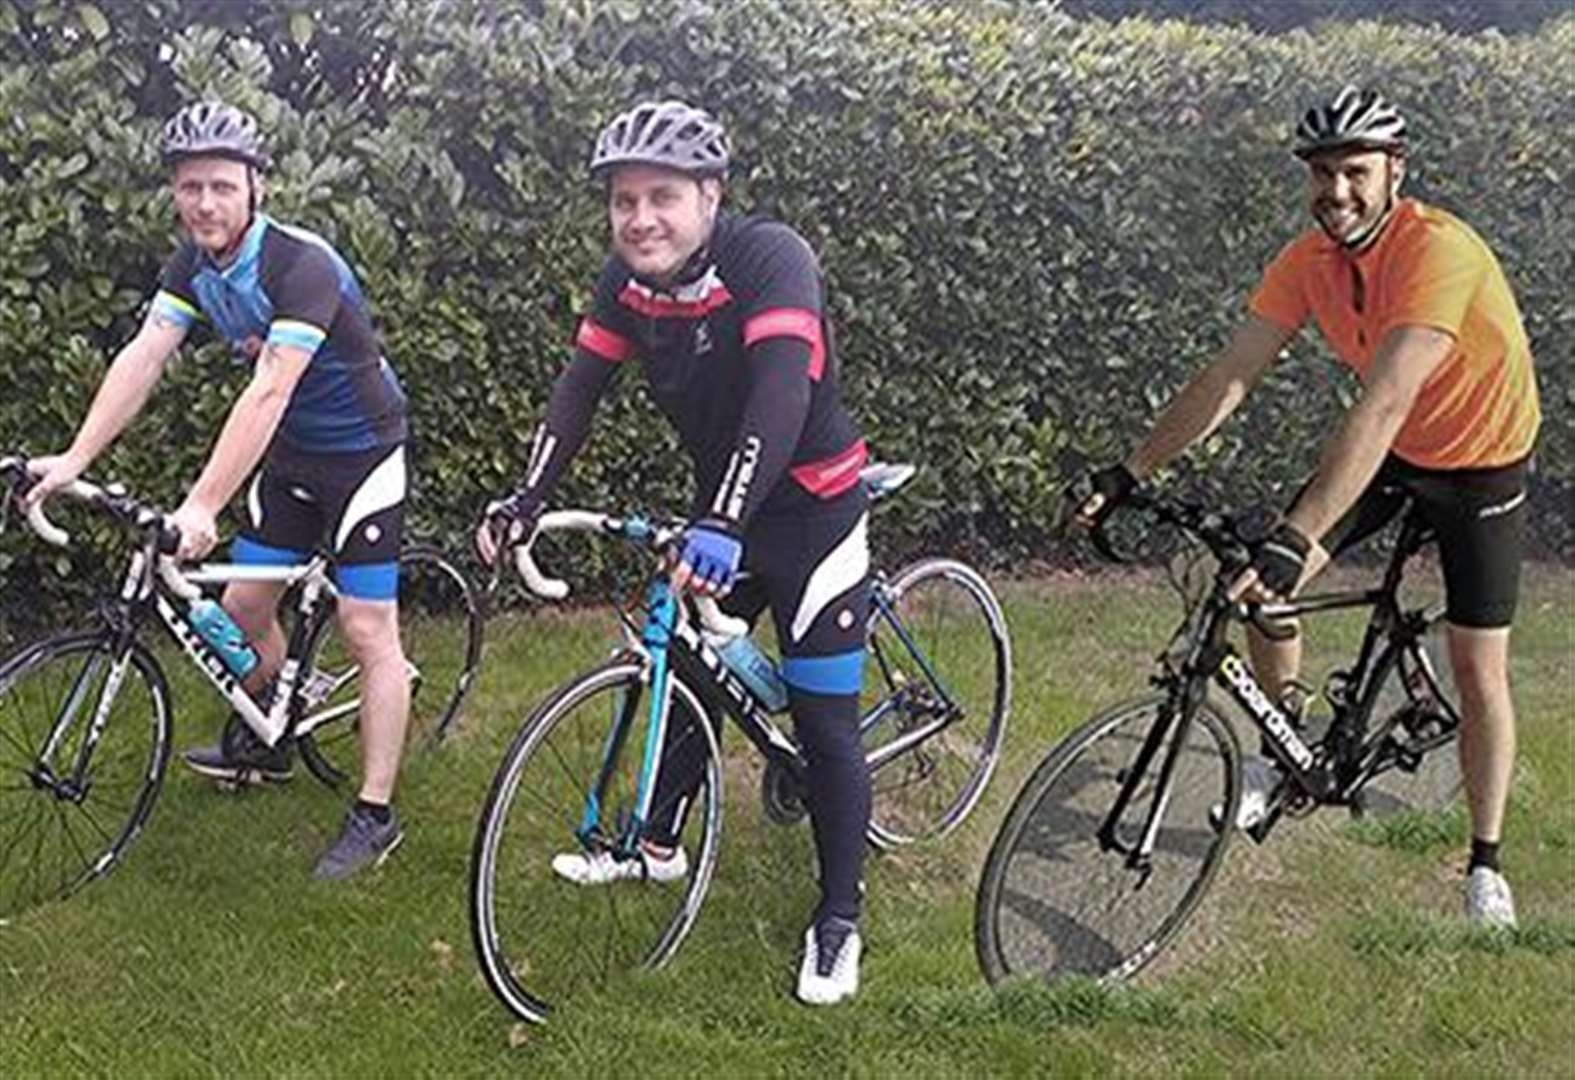 Grantham family embark on memorial bike ride